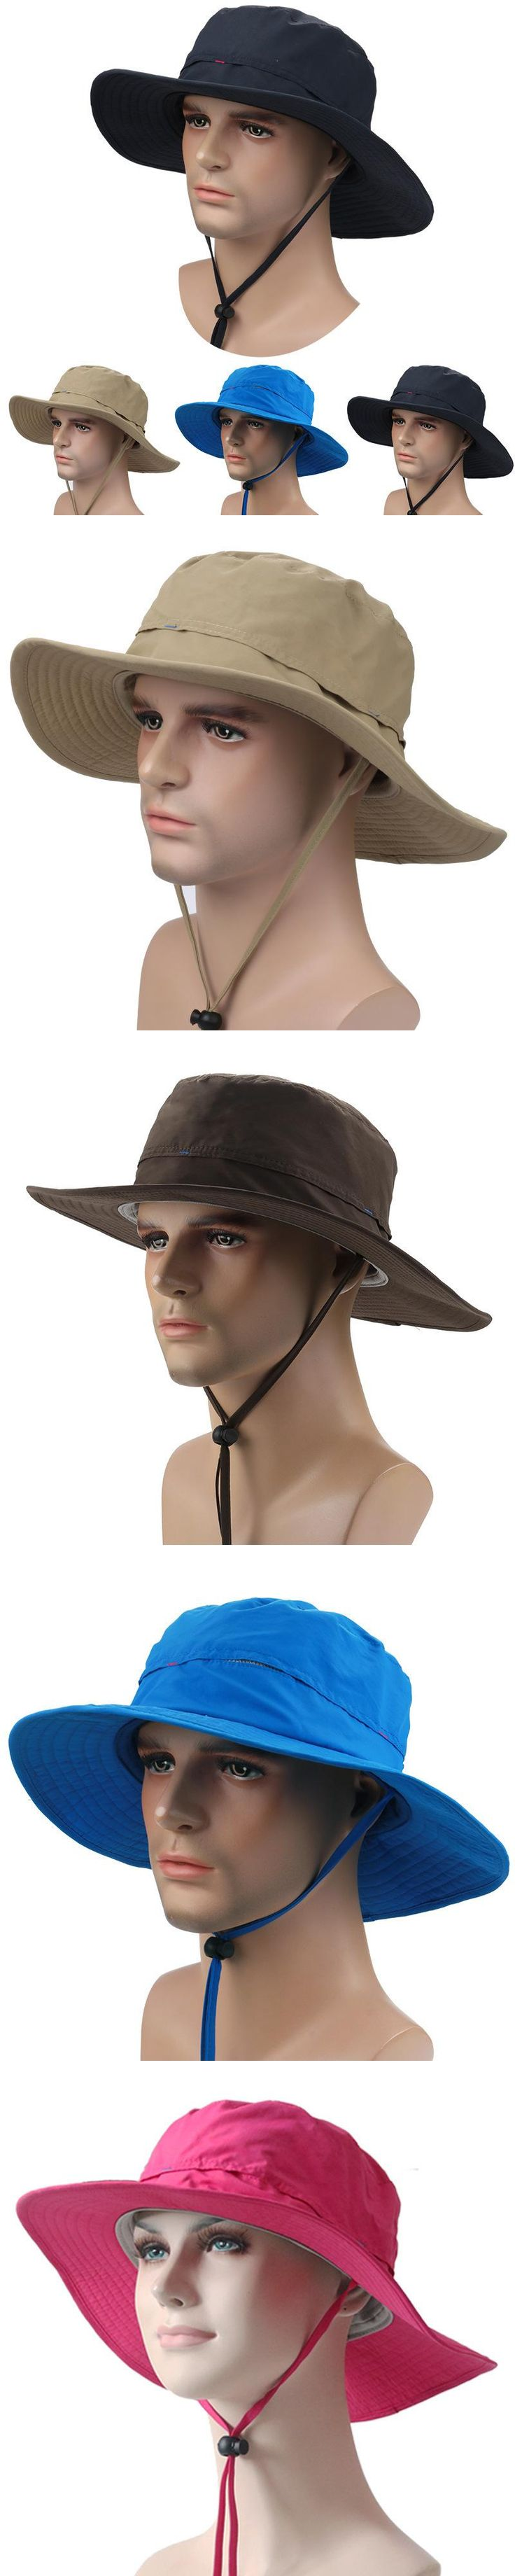 Outdoor Men Caps Summer Bucket Hats for women wide Brim Breathable Sun Hat Hiking Fisherman pith helmets Climbing Jungle Cap